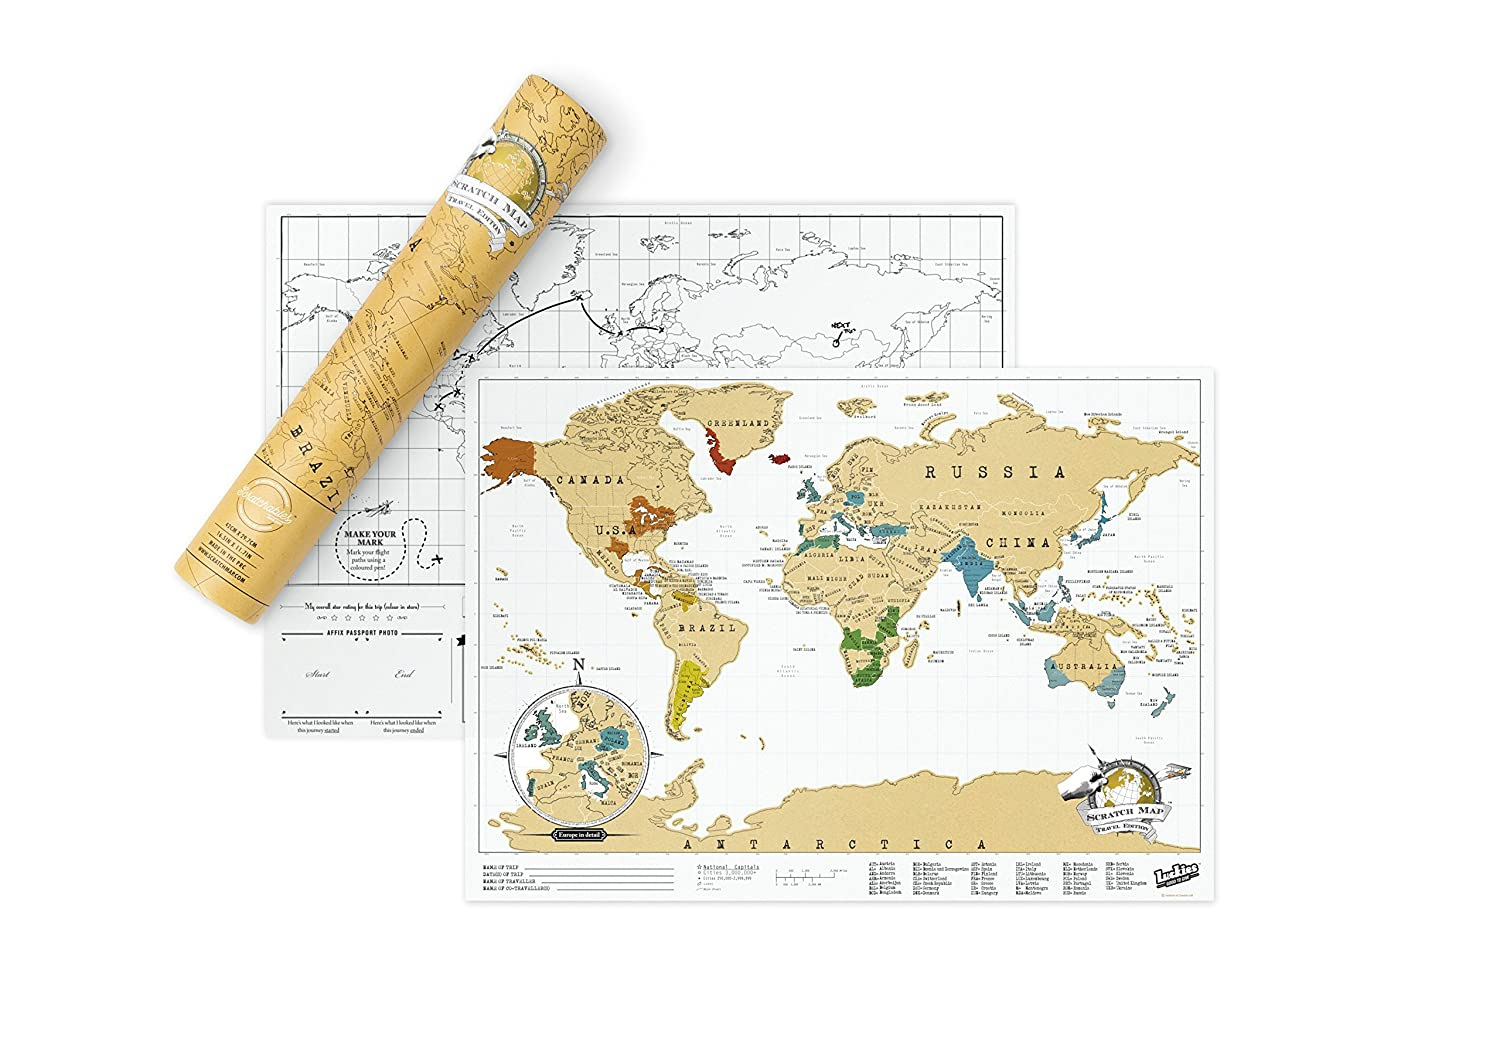 Amazoncom Scratch Map Travel Size Personalised World Map By - Scratch world map us manaufacturuer